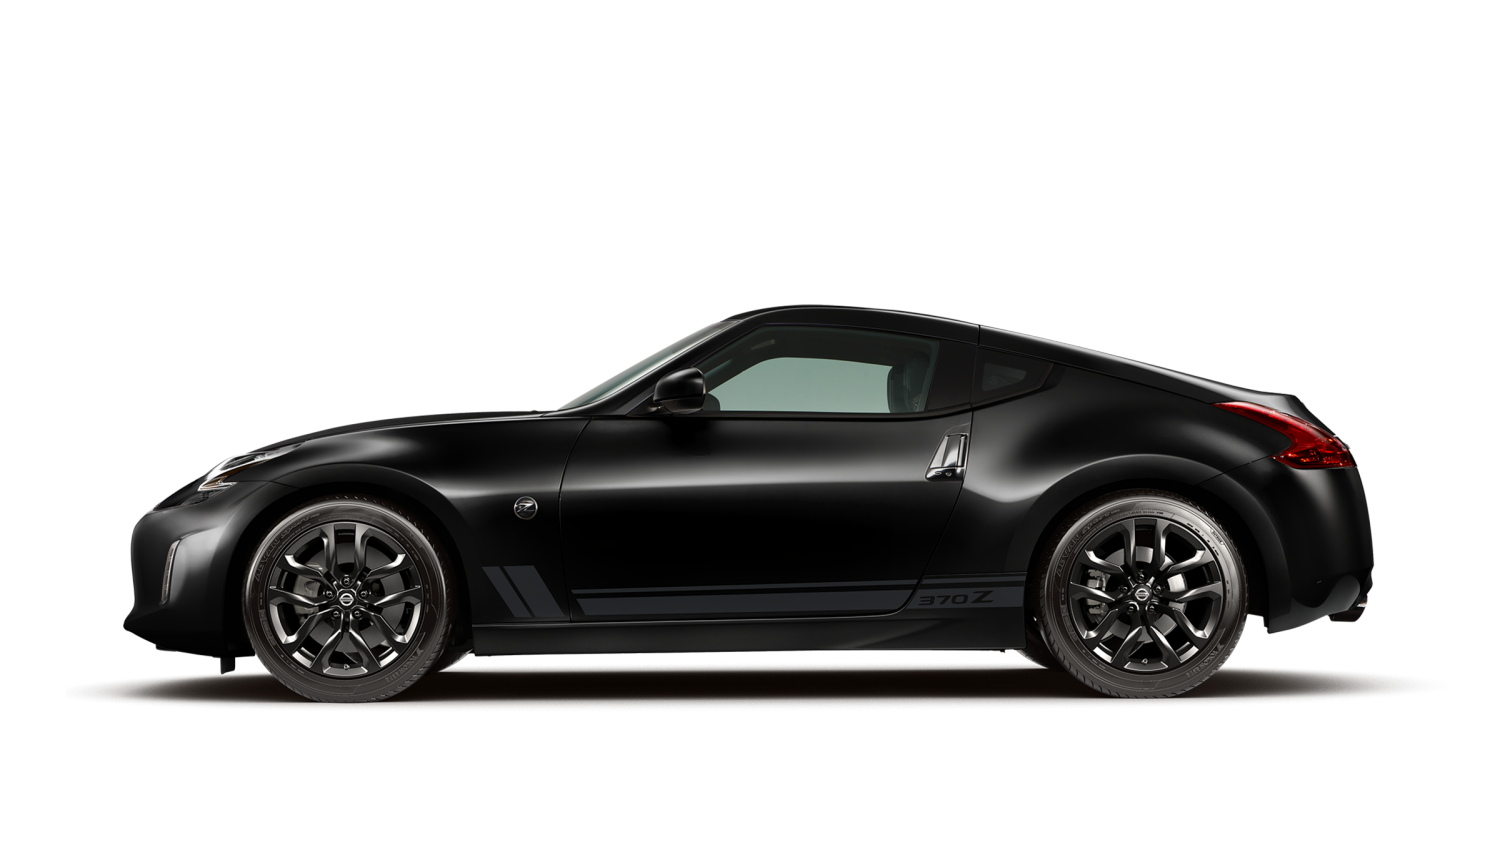 71 Best Review 2019 Nissan 370Z Heritage Edition Overview by 2019 Nissan 370Z Heritage Edition